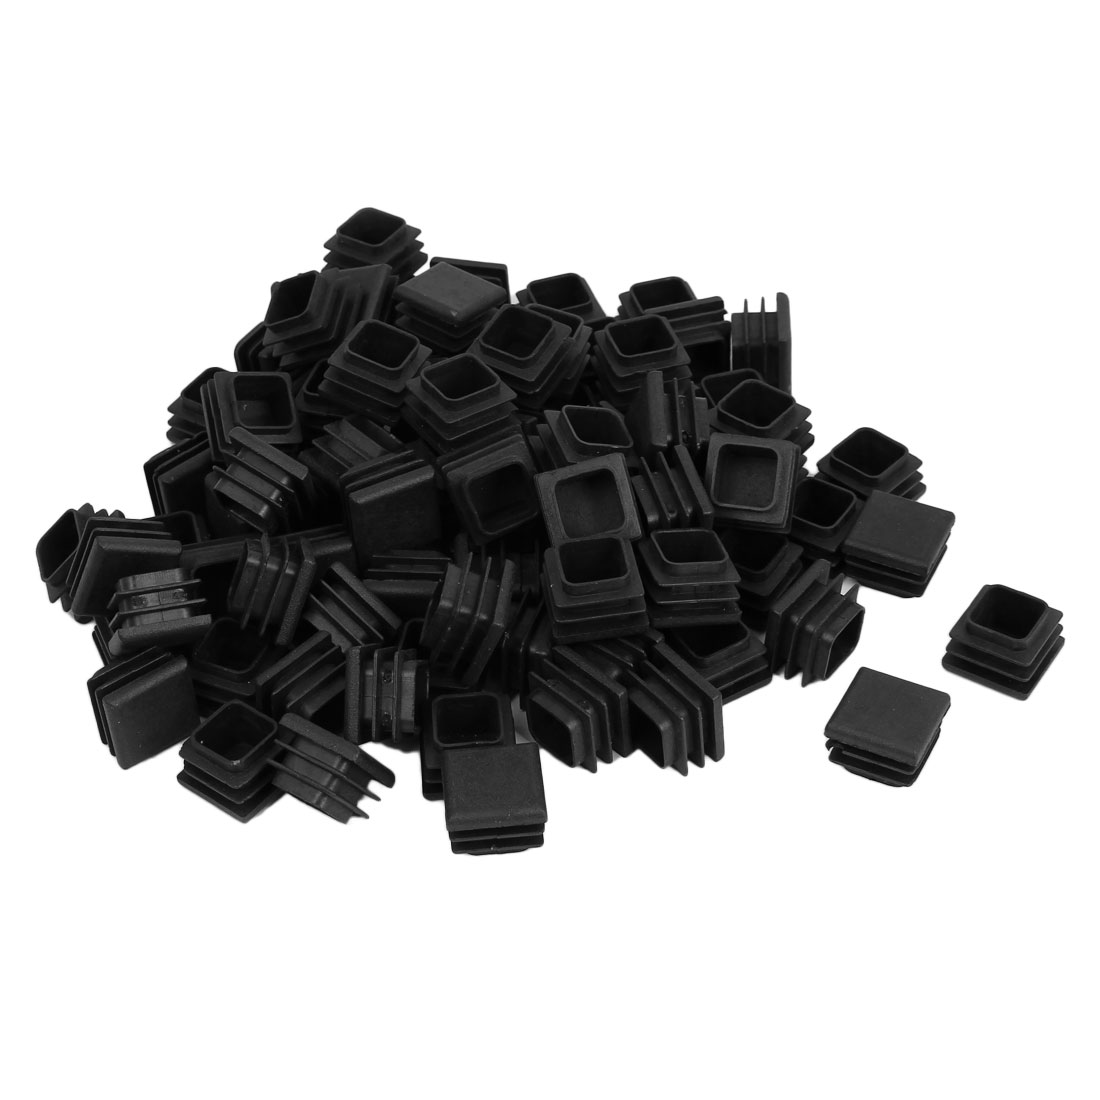 20mm x 20mm Plastic Square Blanking End Caps Tubing Tube Inserts 100 Pcs